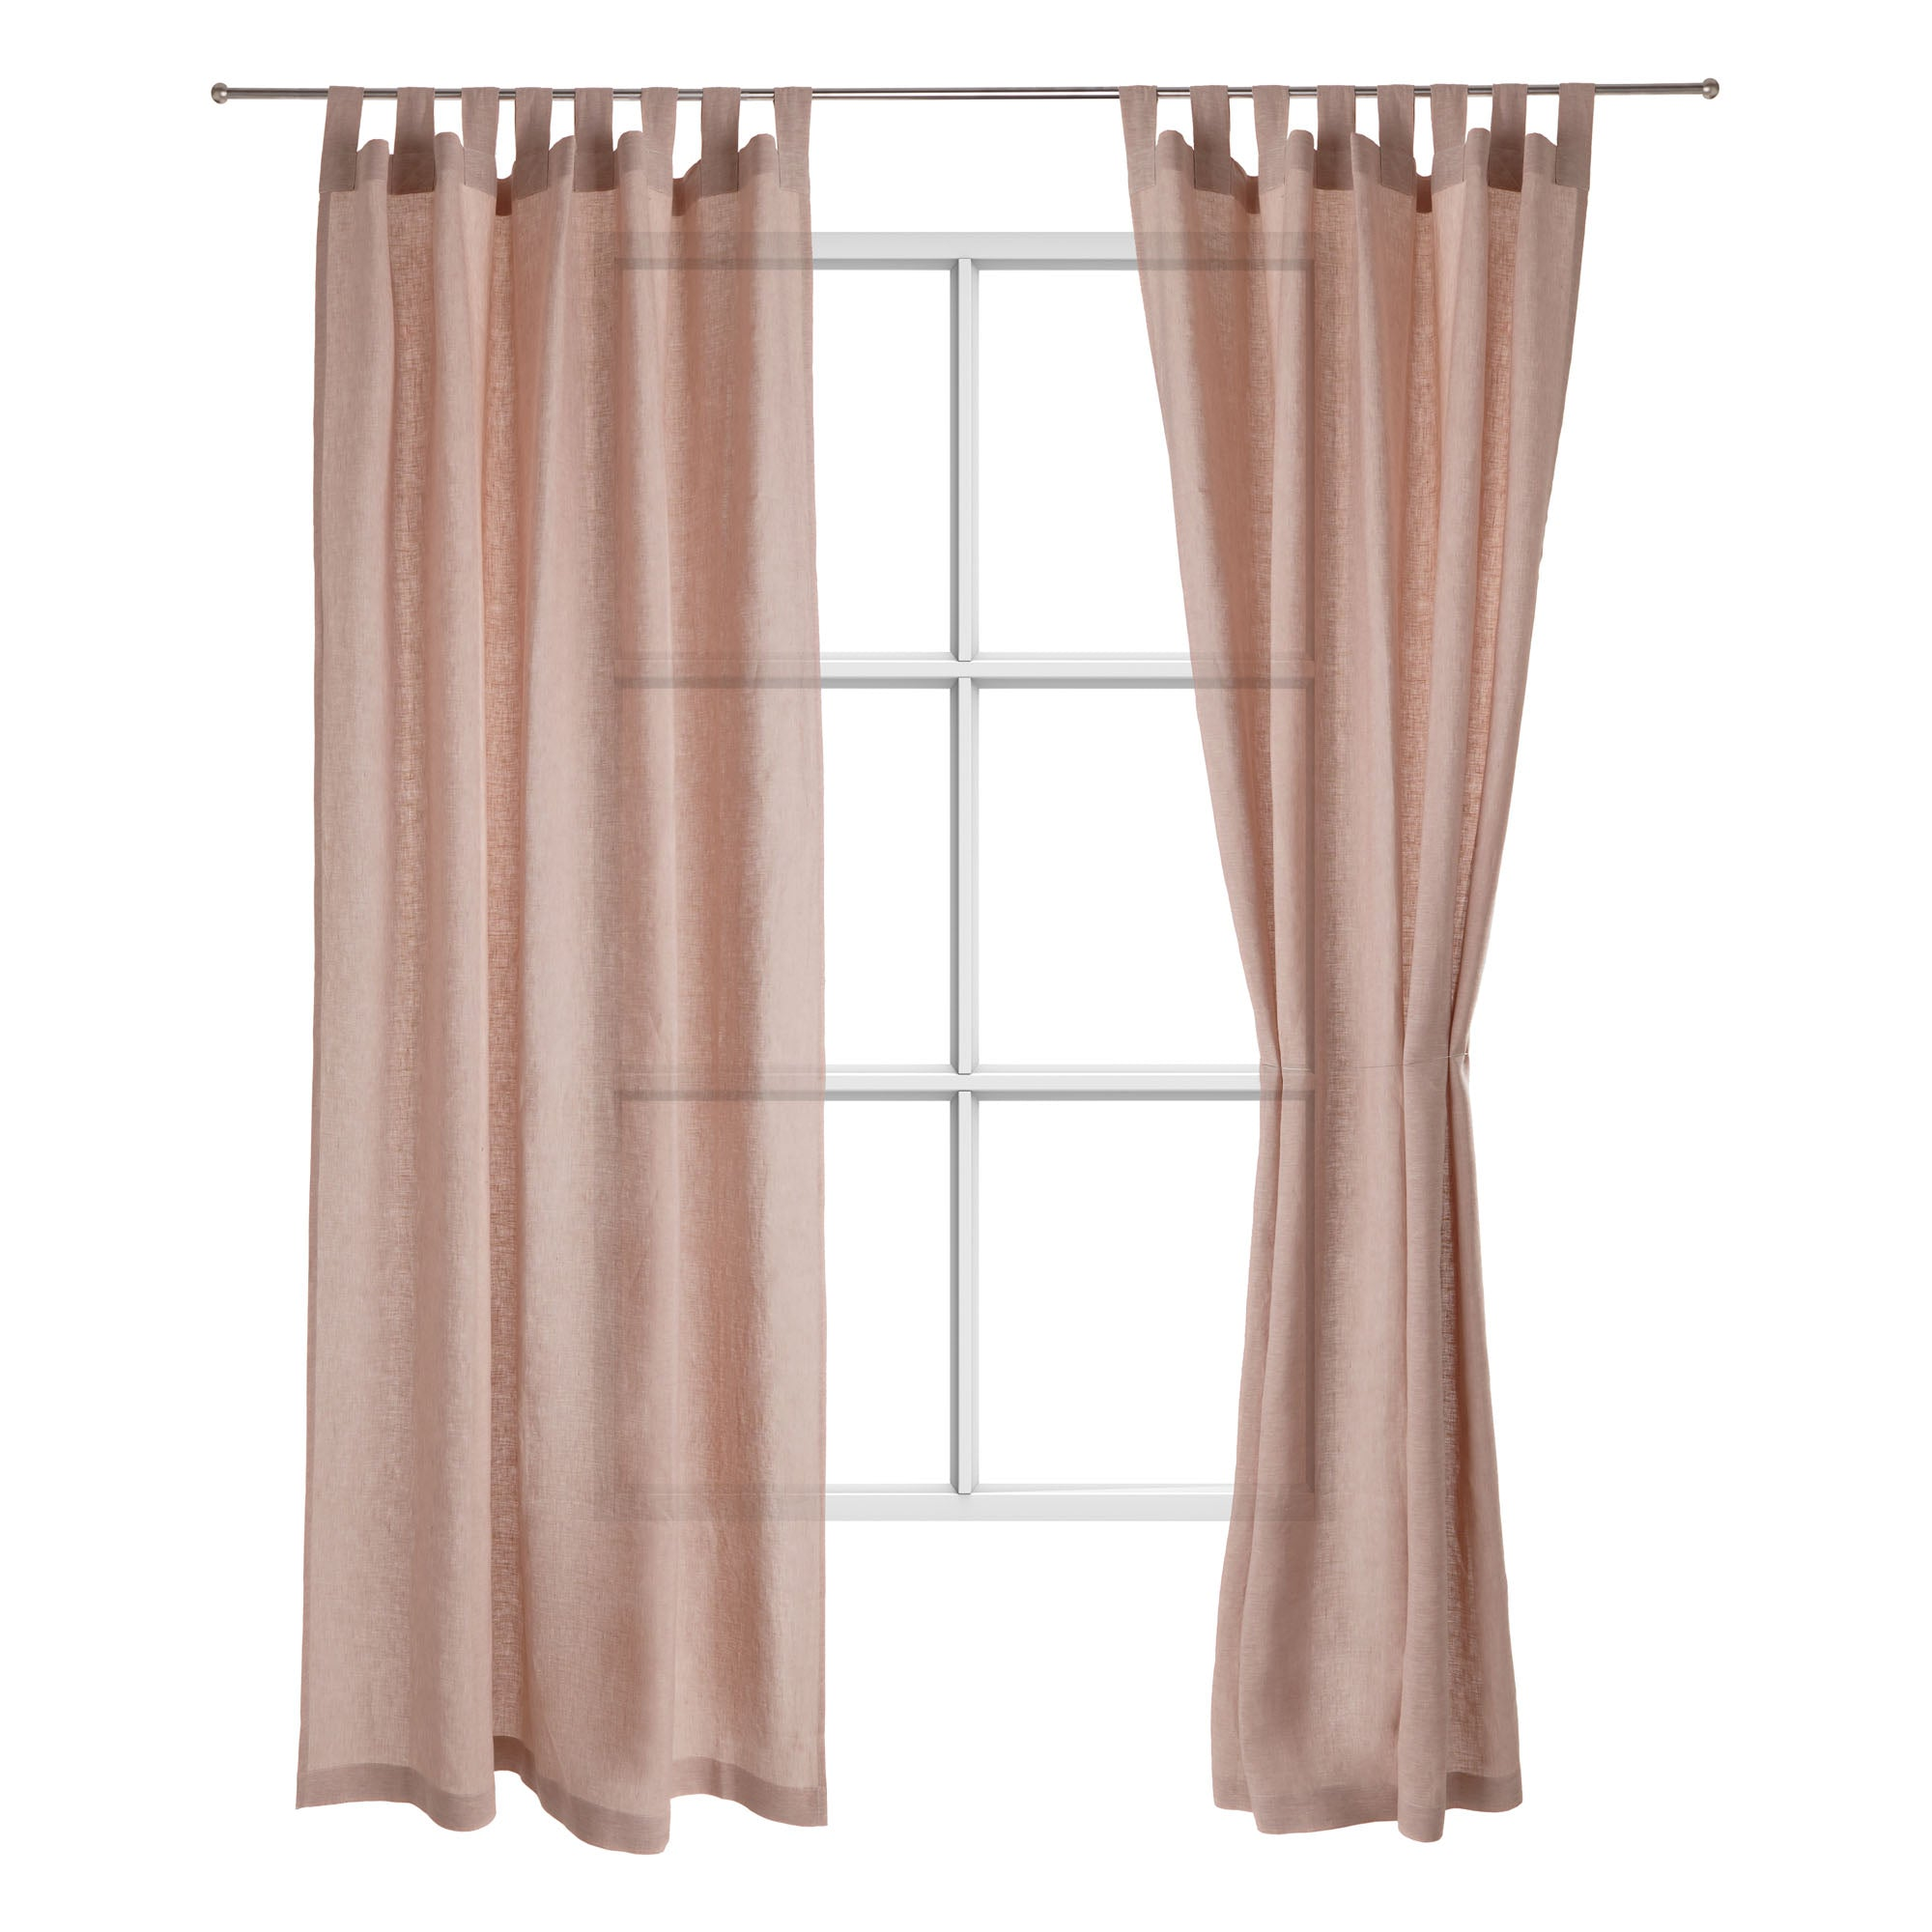 Cuyabeno Curtain [Dusty pink]